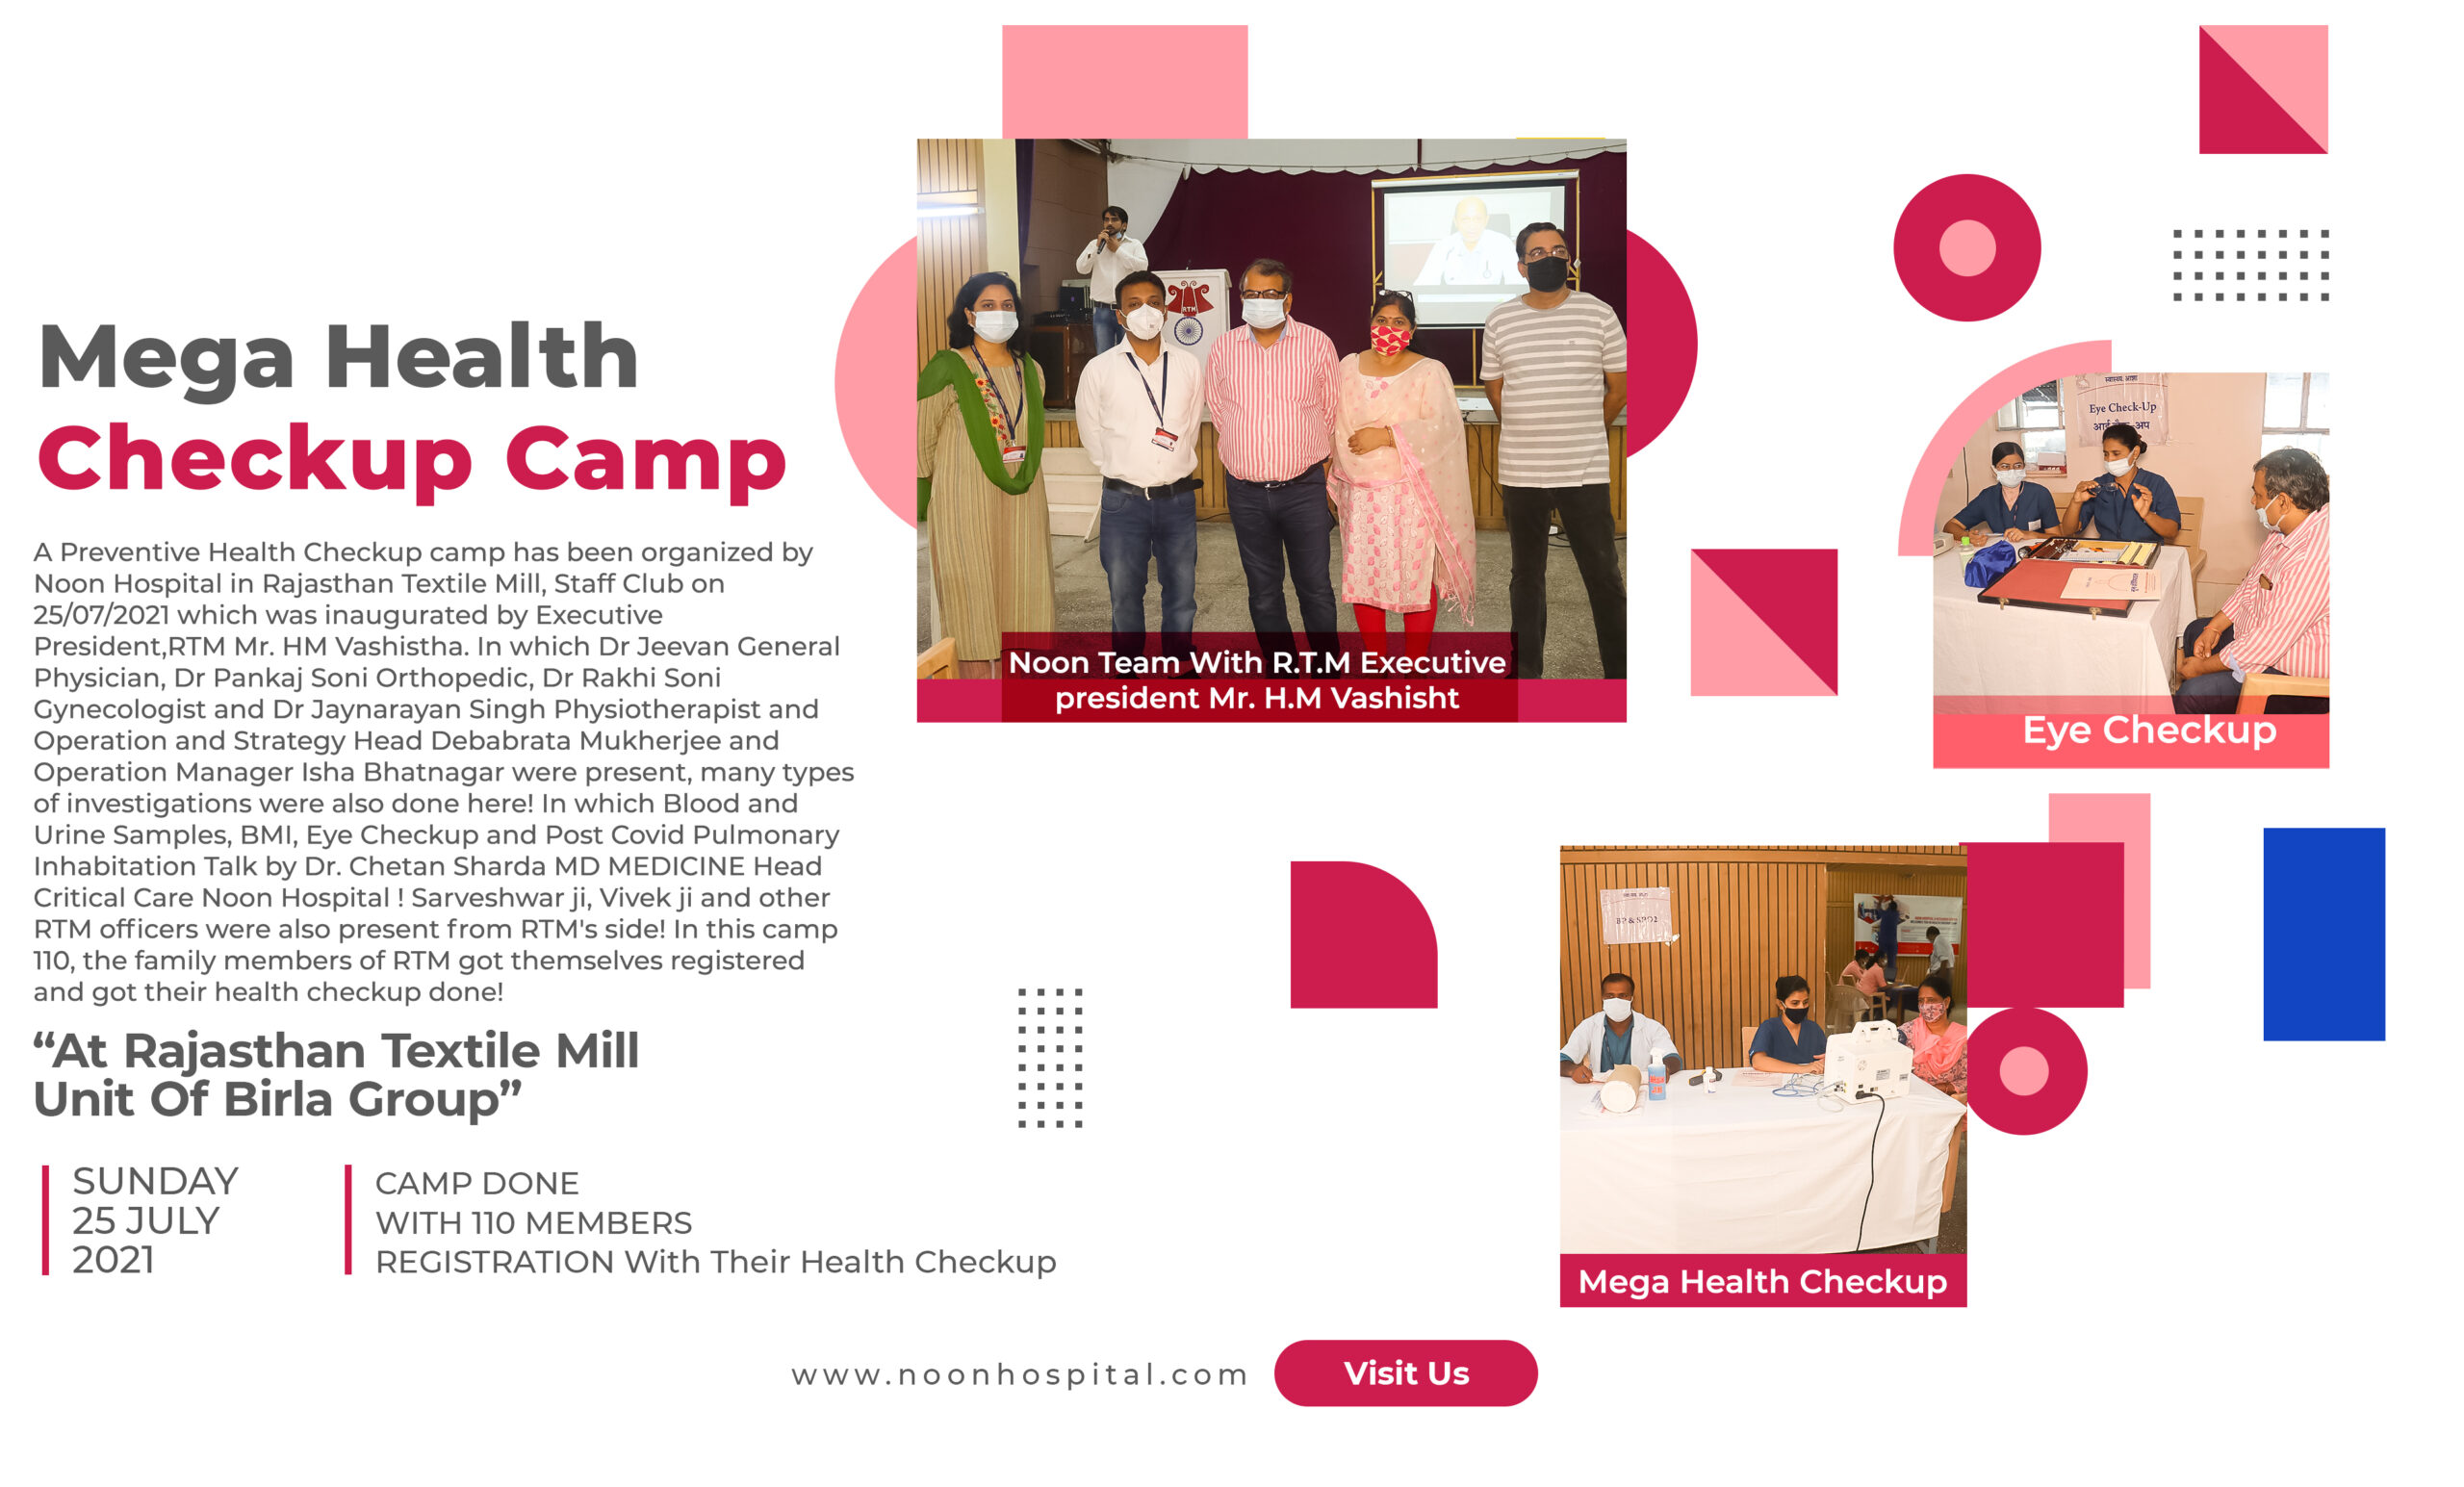 Health Checkup Camp In Rajasthan Textile Mill 2021